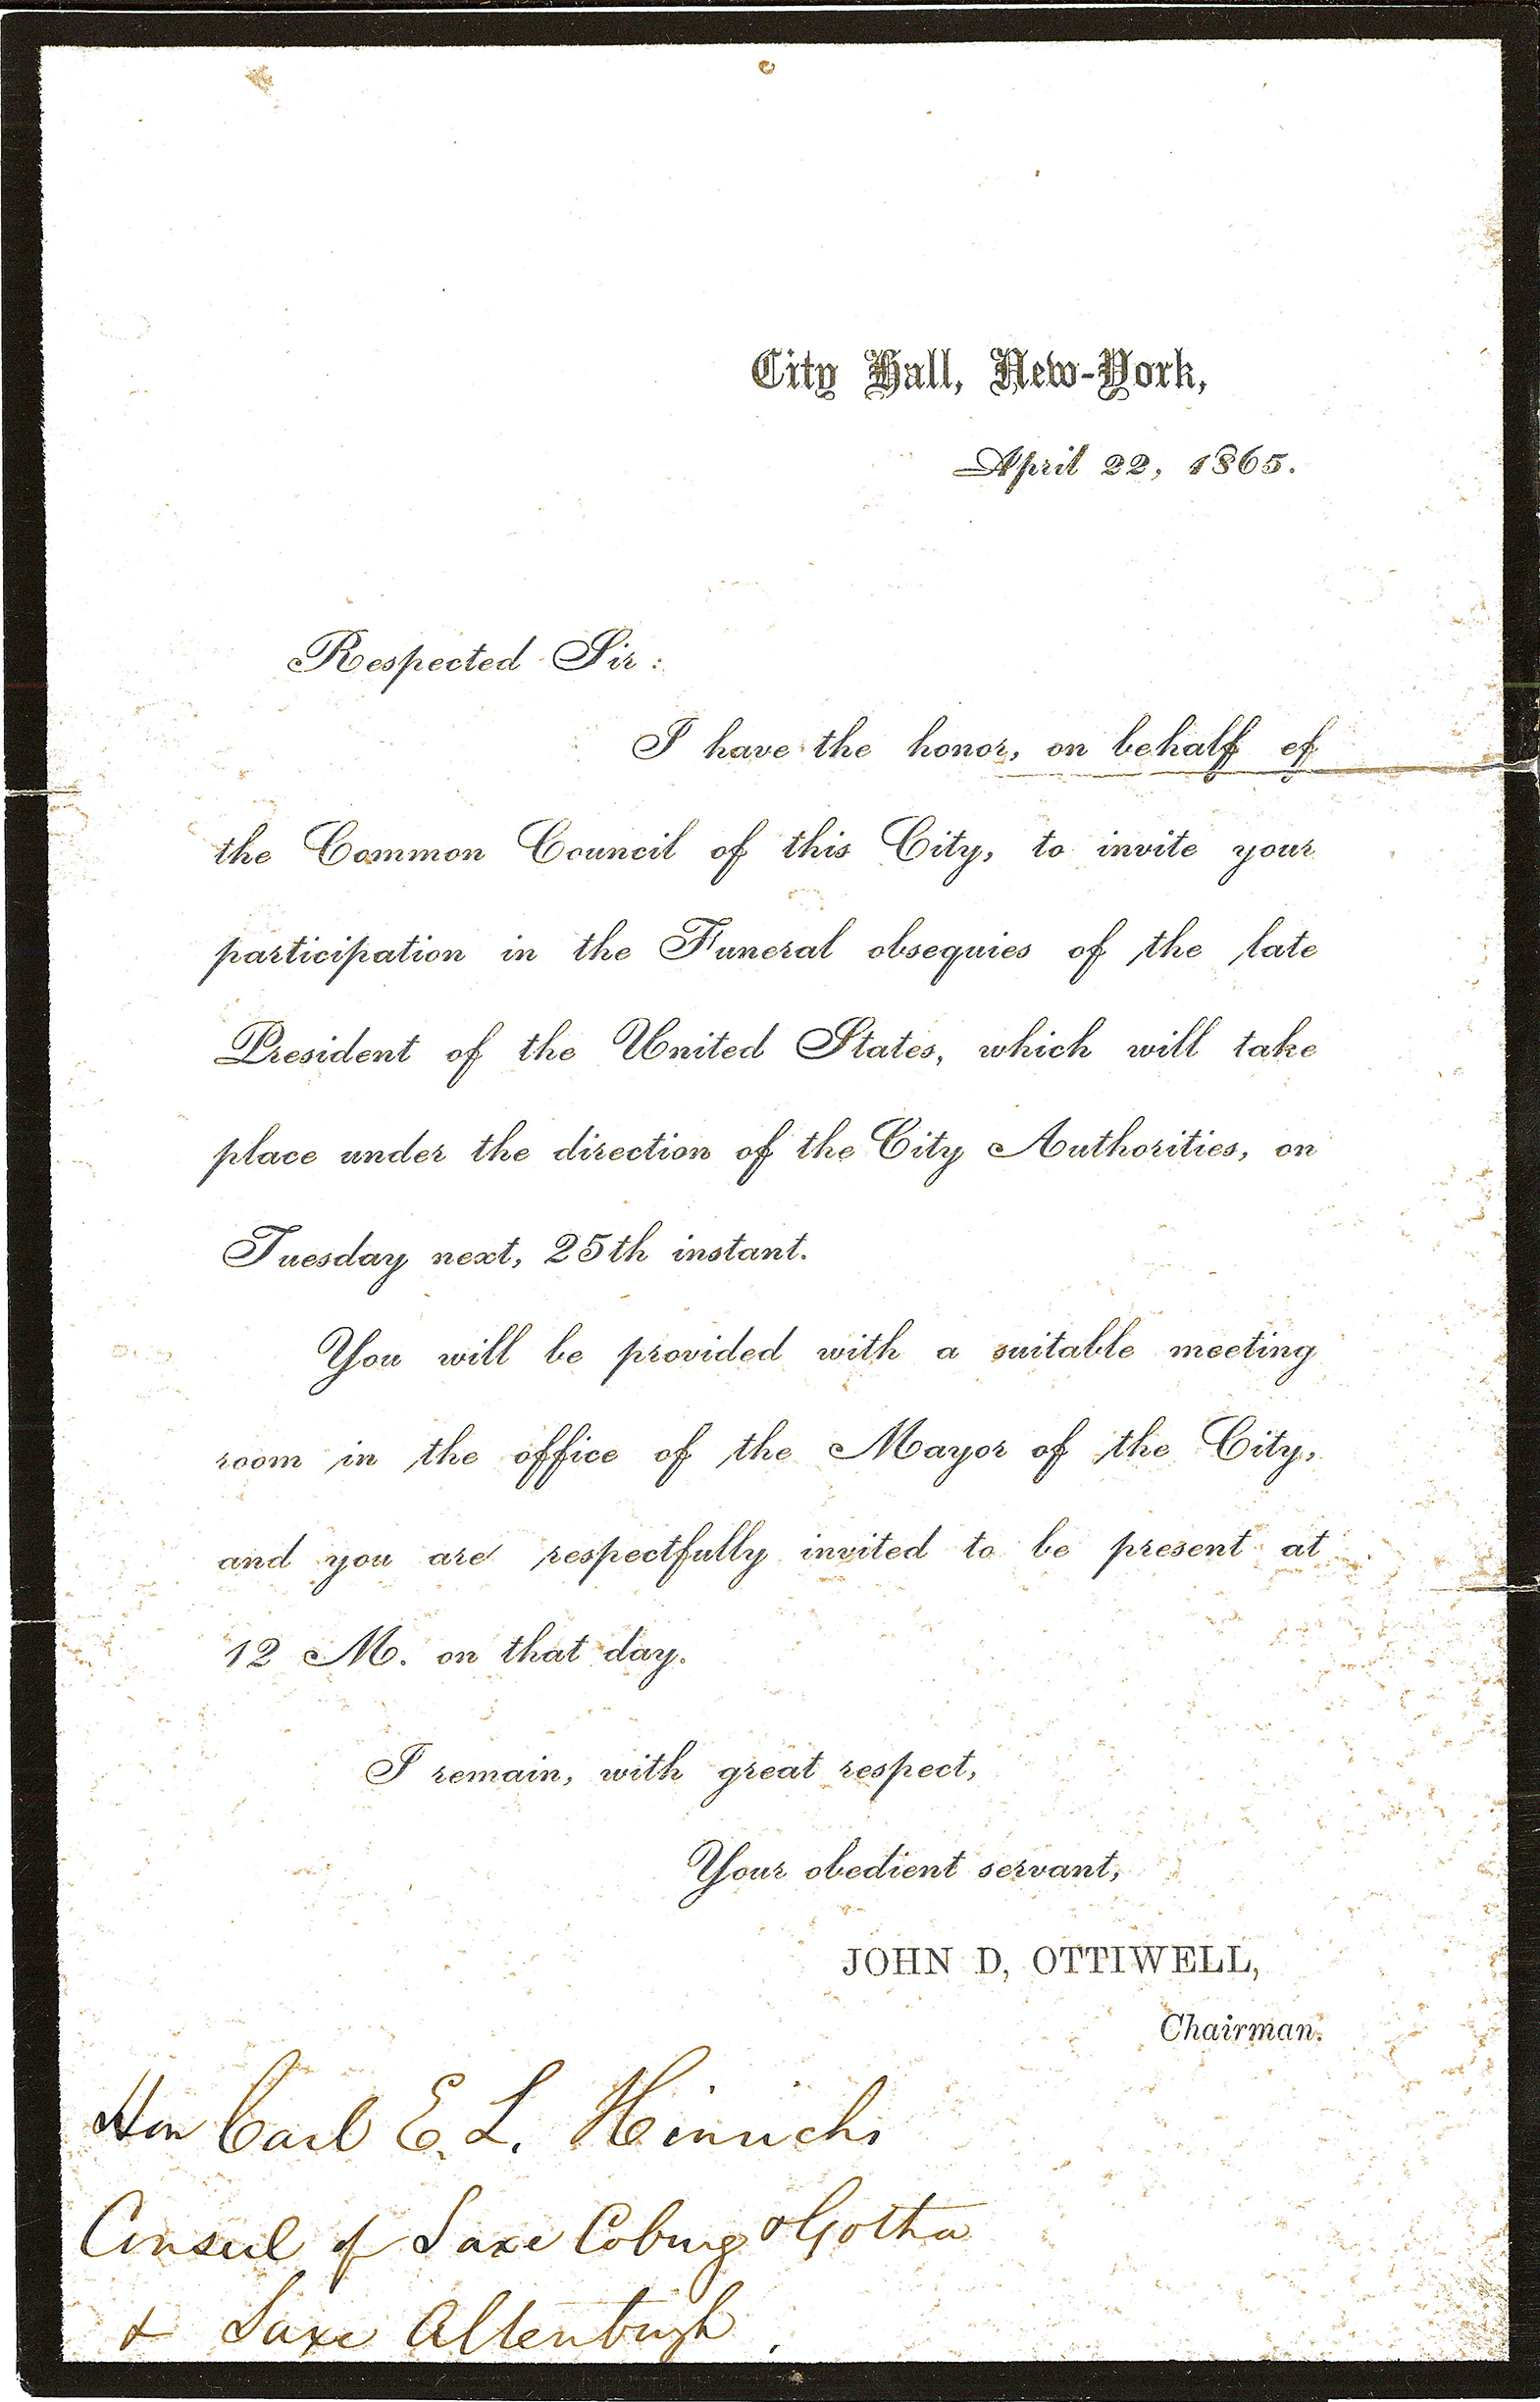 Letter Invitation to Lincoln Funeral New York – Invitation to a Funeral